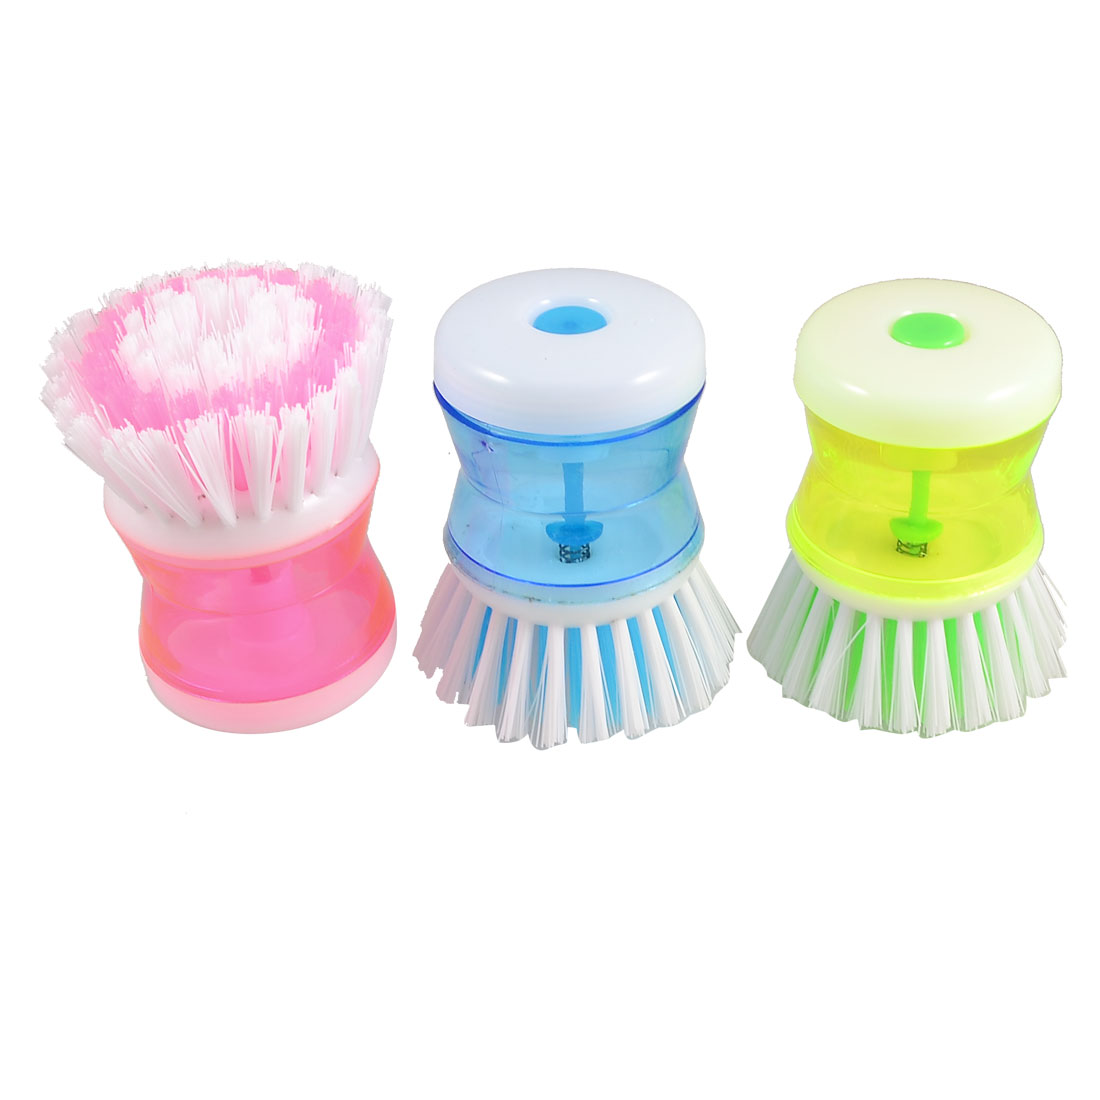 Assorted Color Plastic Grip Kitchen Wok Pot Self Dispensing Brush Cleaner 3 Pcs